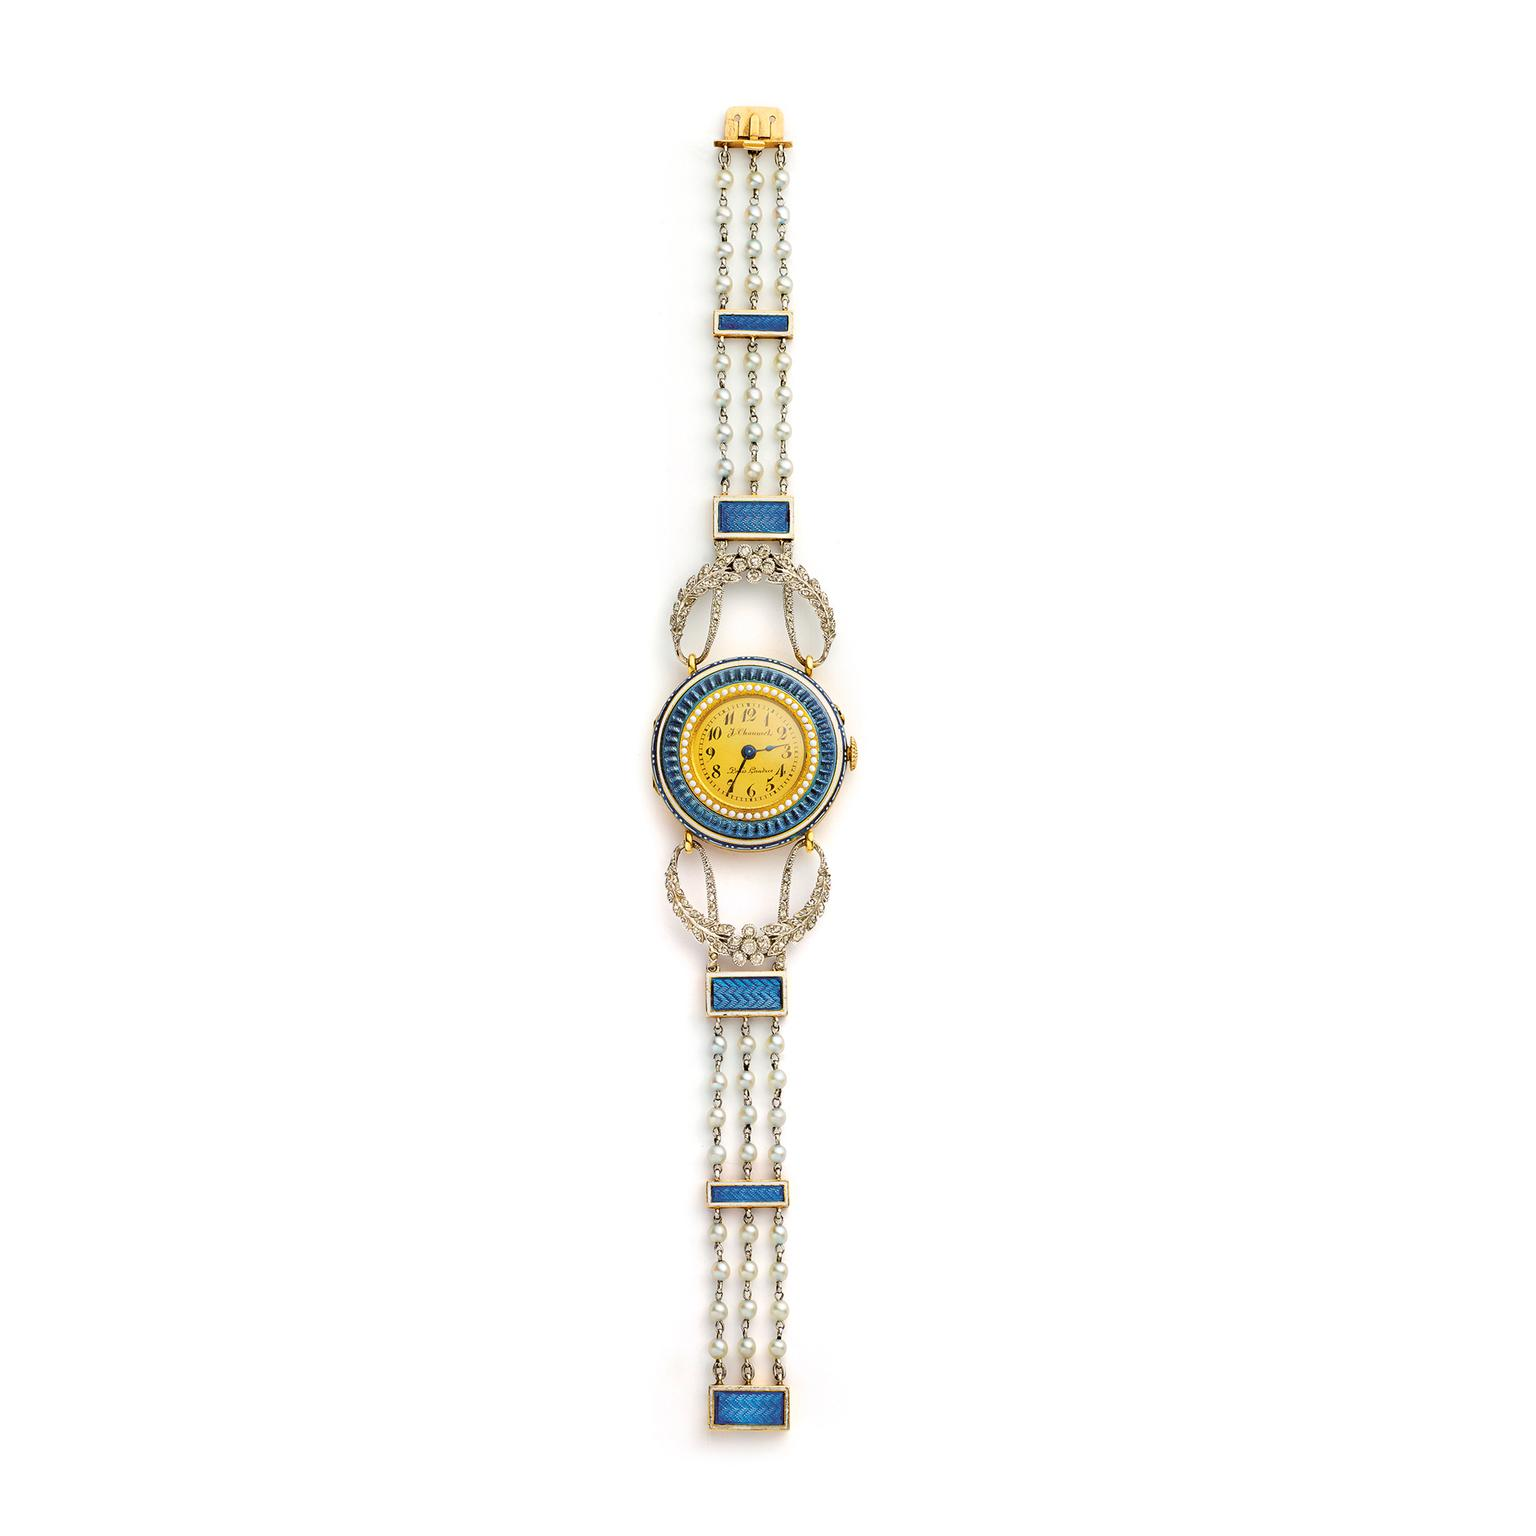 Chaumet forget-me-not watch